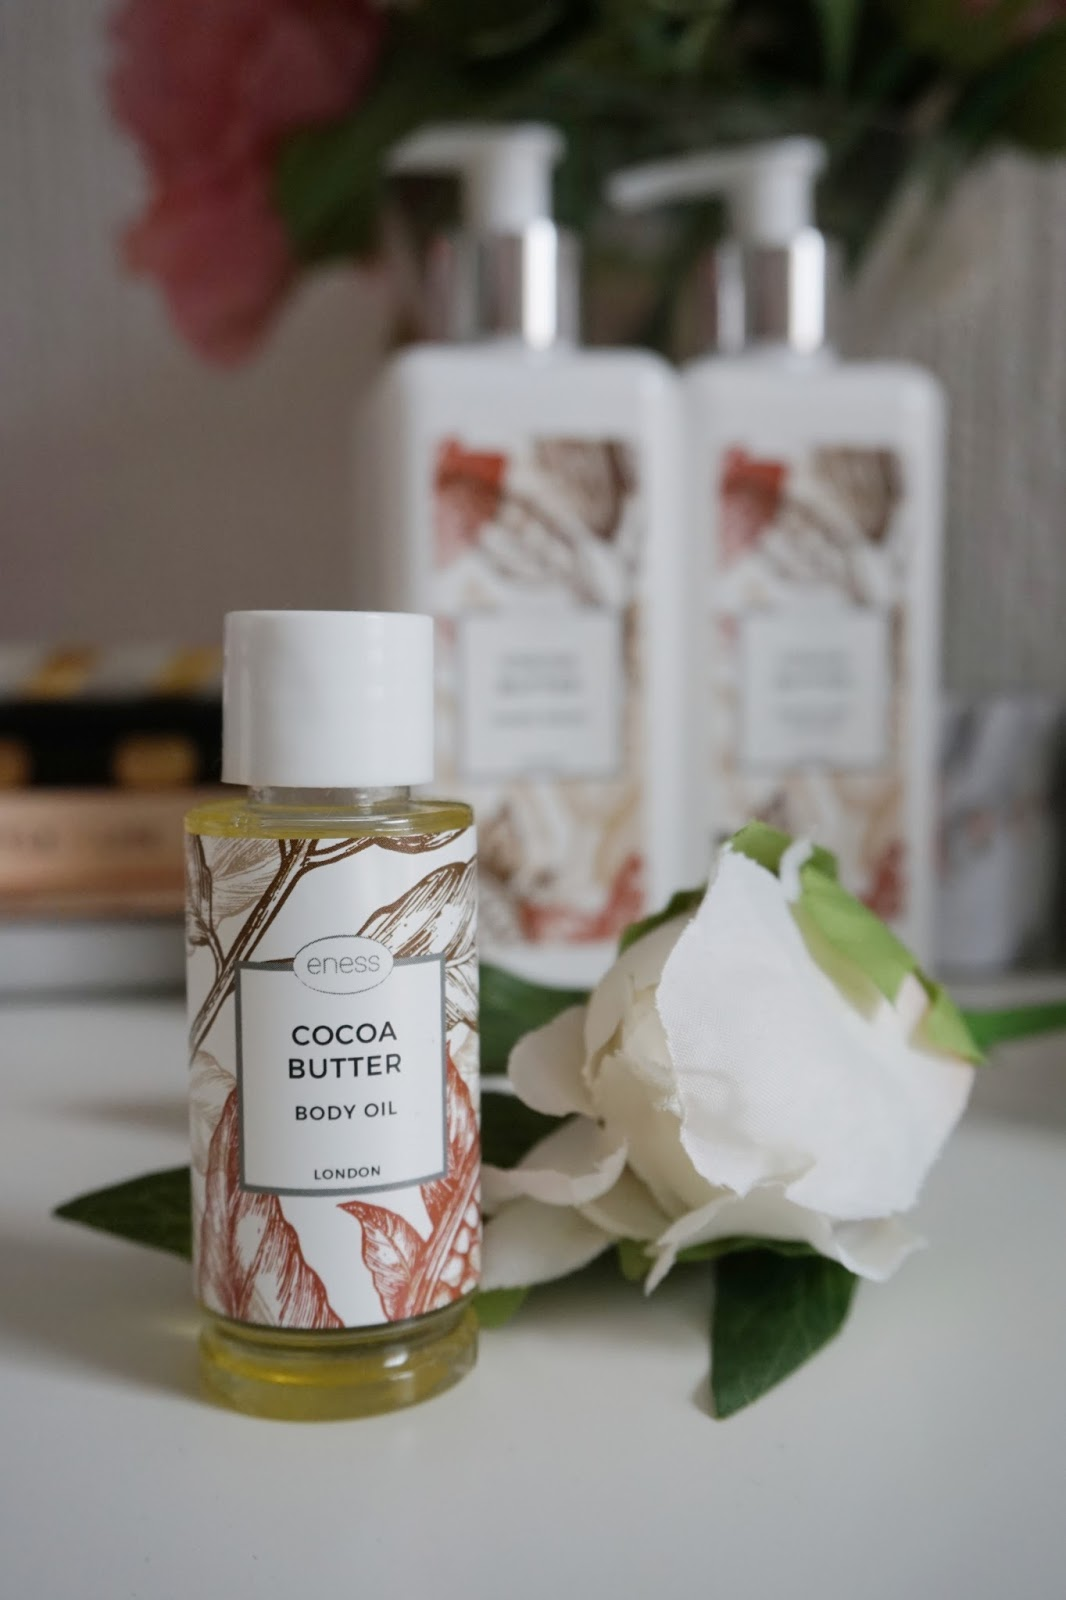 The Eness Cosmetics Cocoa Butter Body Oil from the new botanical range